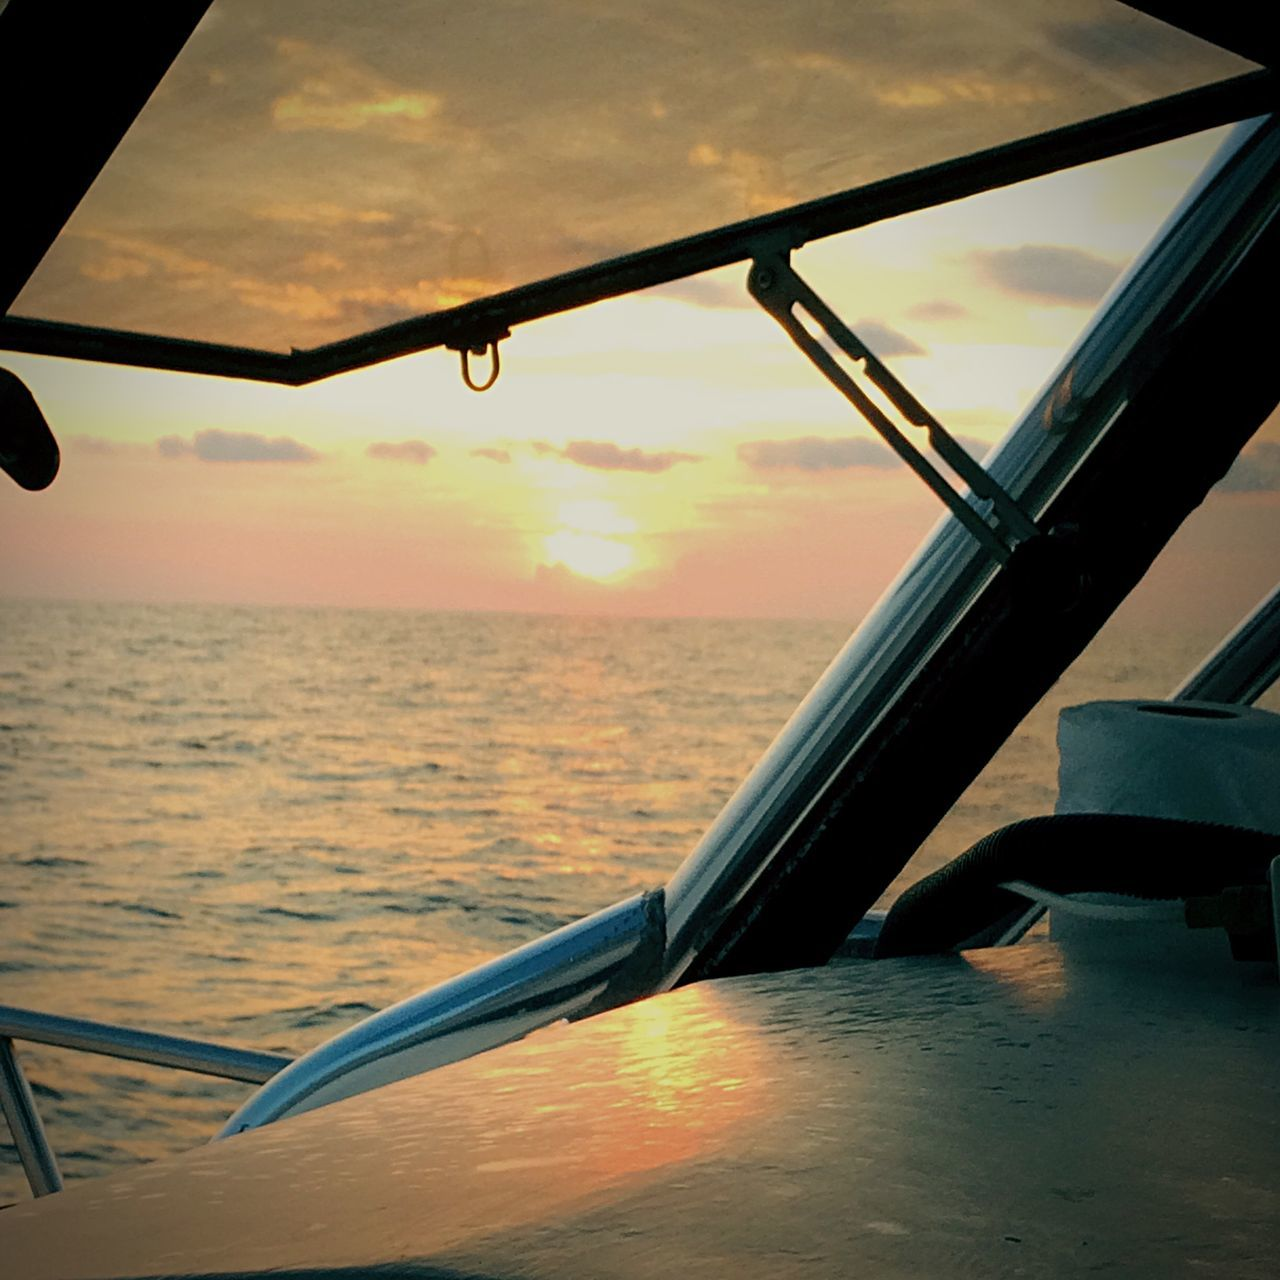 sea, water, transportation, sunset, sky, mode of transport, nature, no people, beauty in nature, scenics, cloud - sky, horizon over water, nautical vessel, outdoors, close-up, day